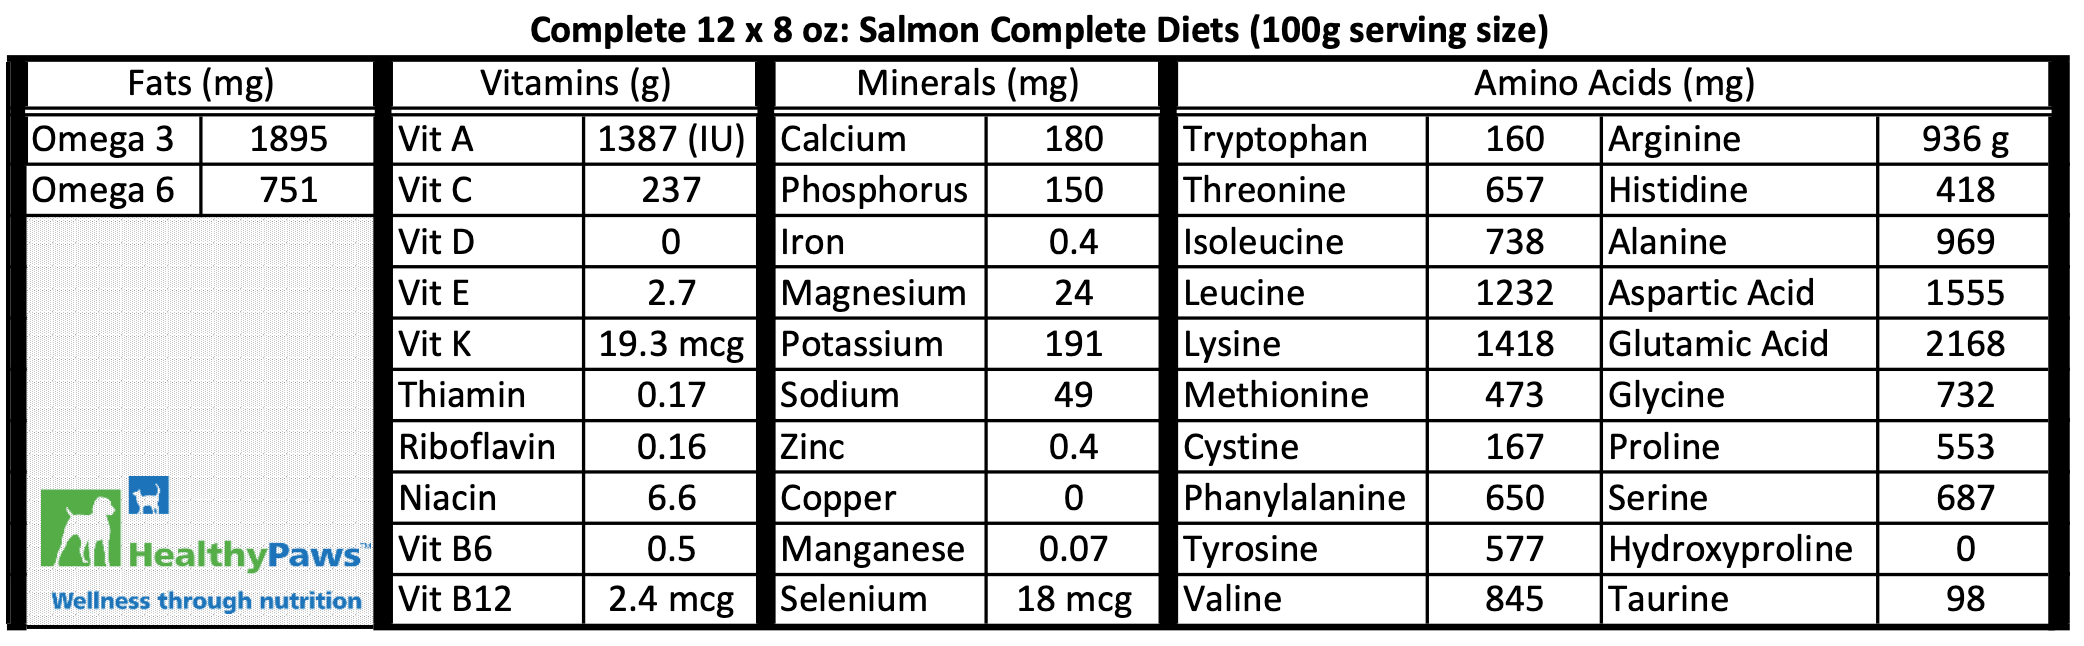 Healthy Paws Dog Salmon Complete Diet nutrition information